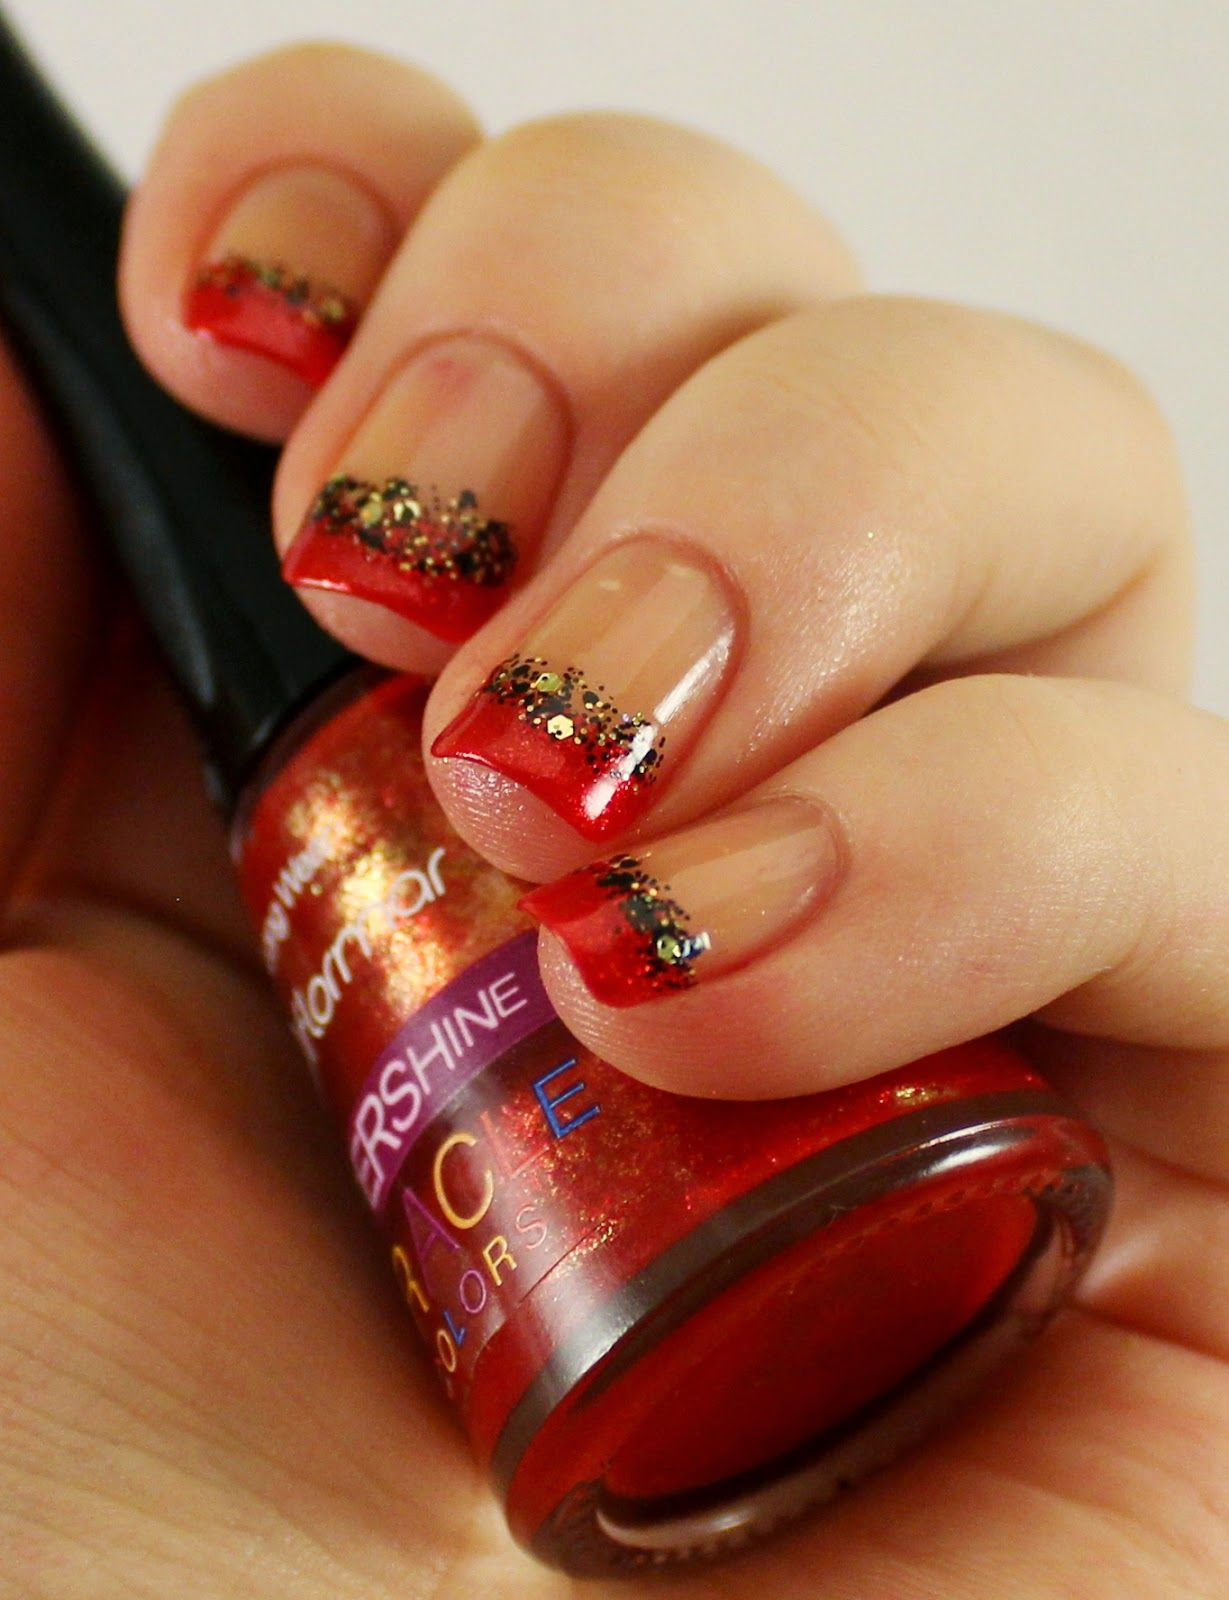 Goodly Nails: Punaista glitterillä